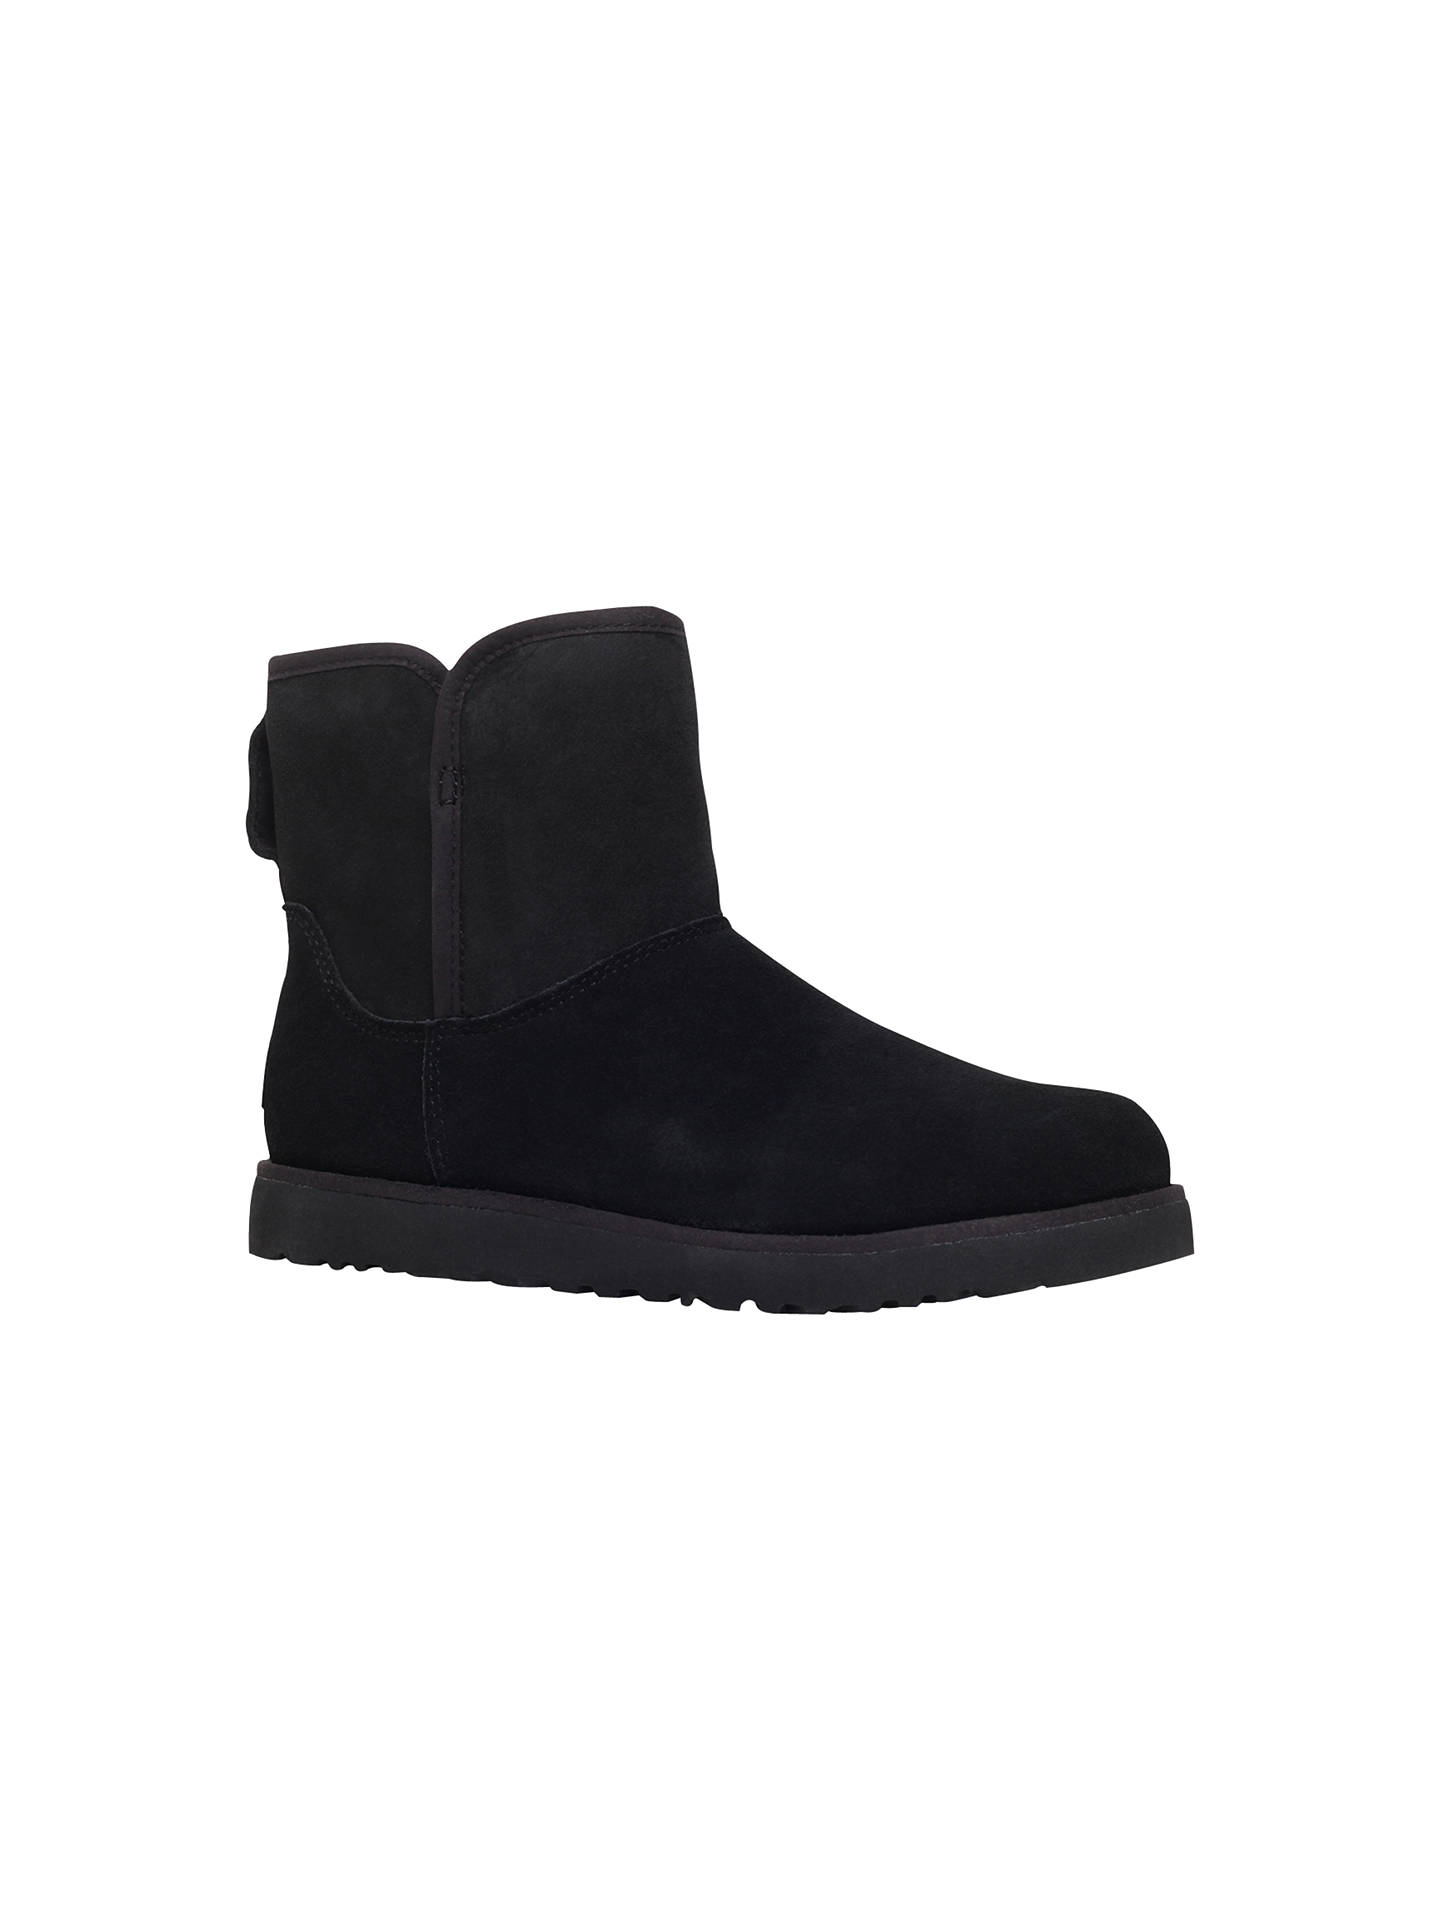 b40b18ad343 UGG Cory Flat Ankle Boots at John Lewis & Partners